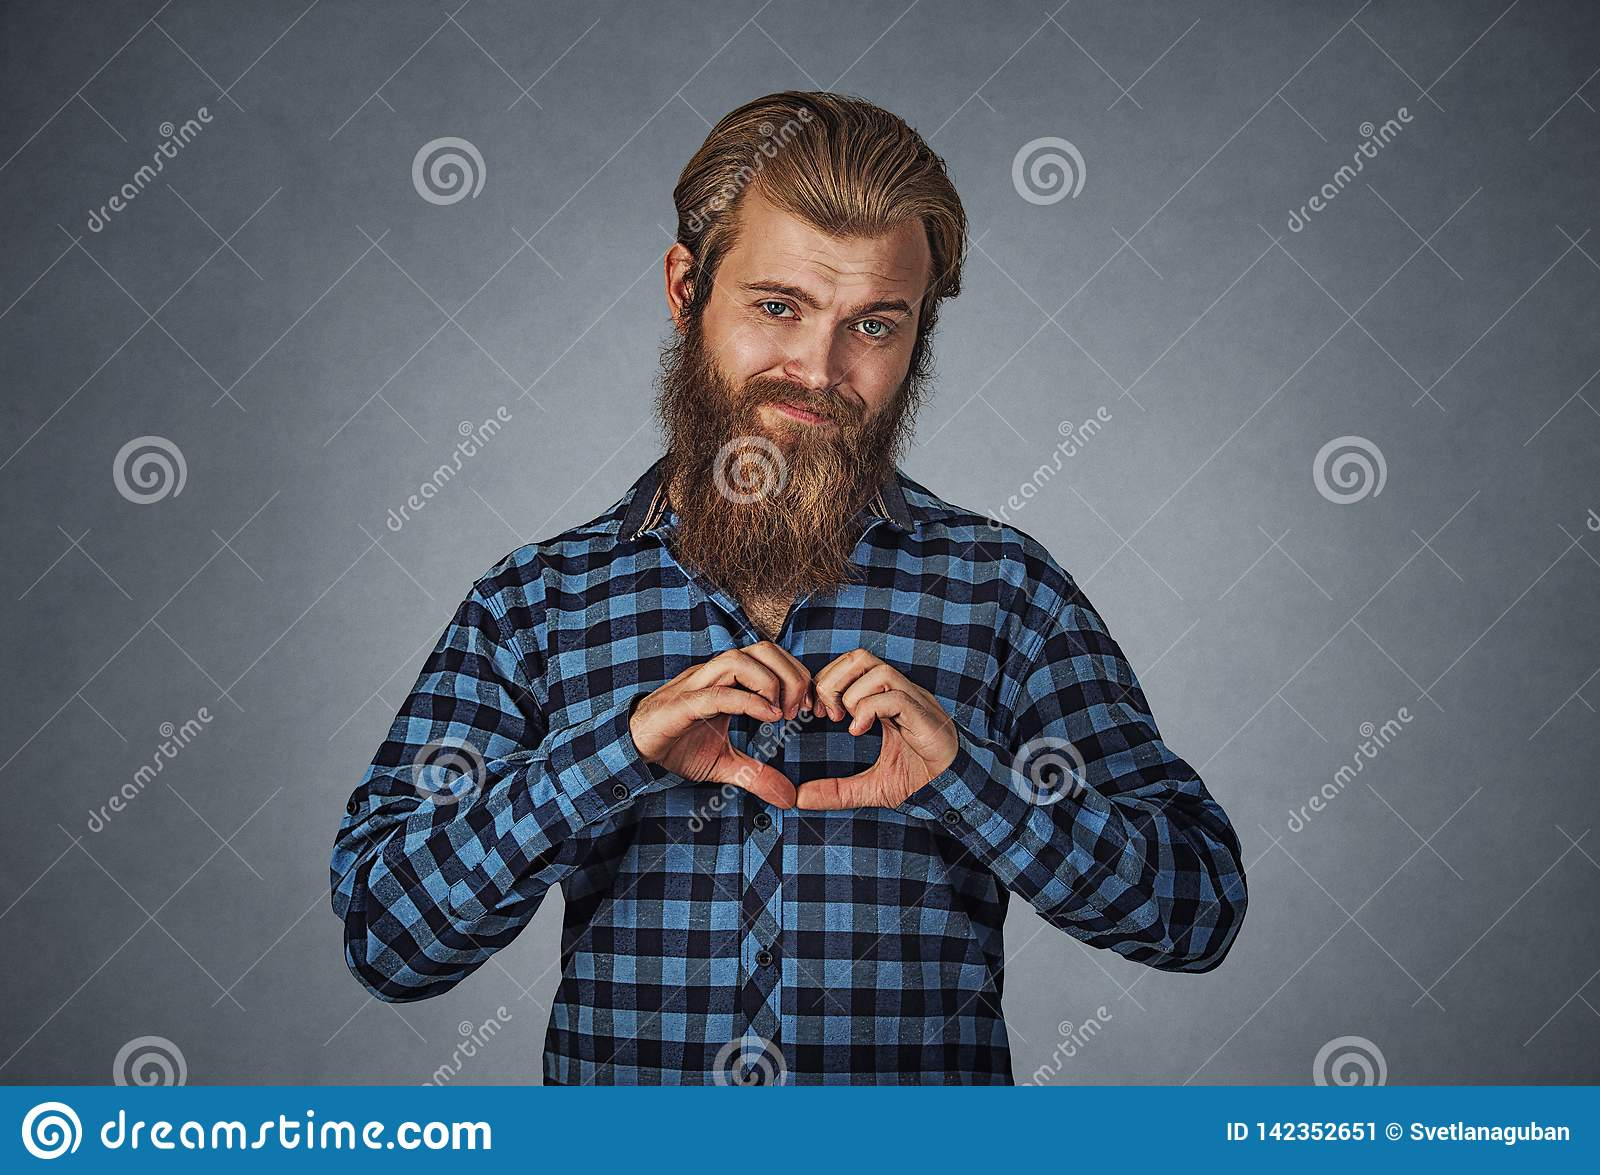 Bearded man making heart gesture with fingers